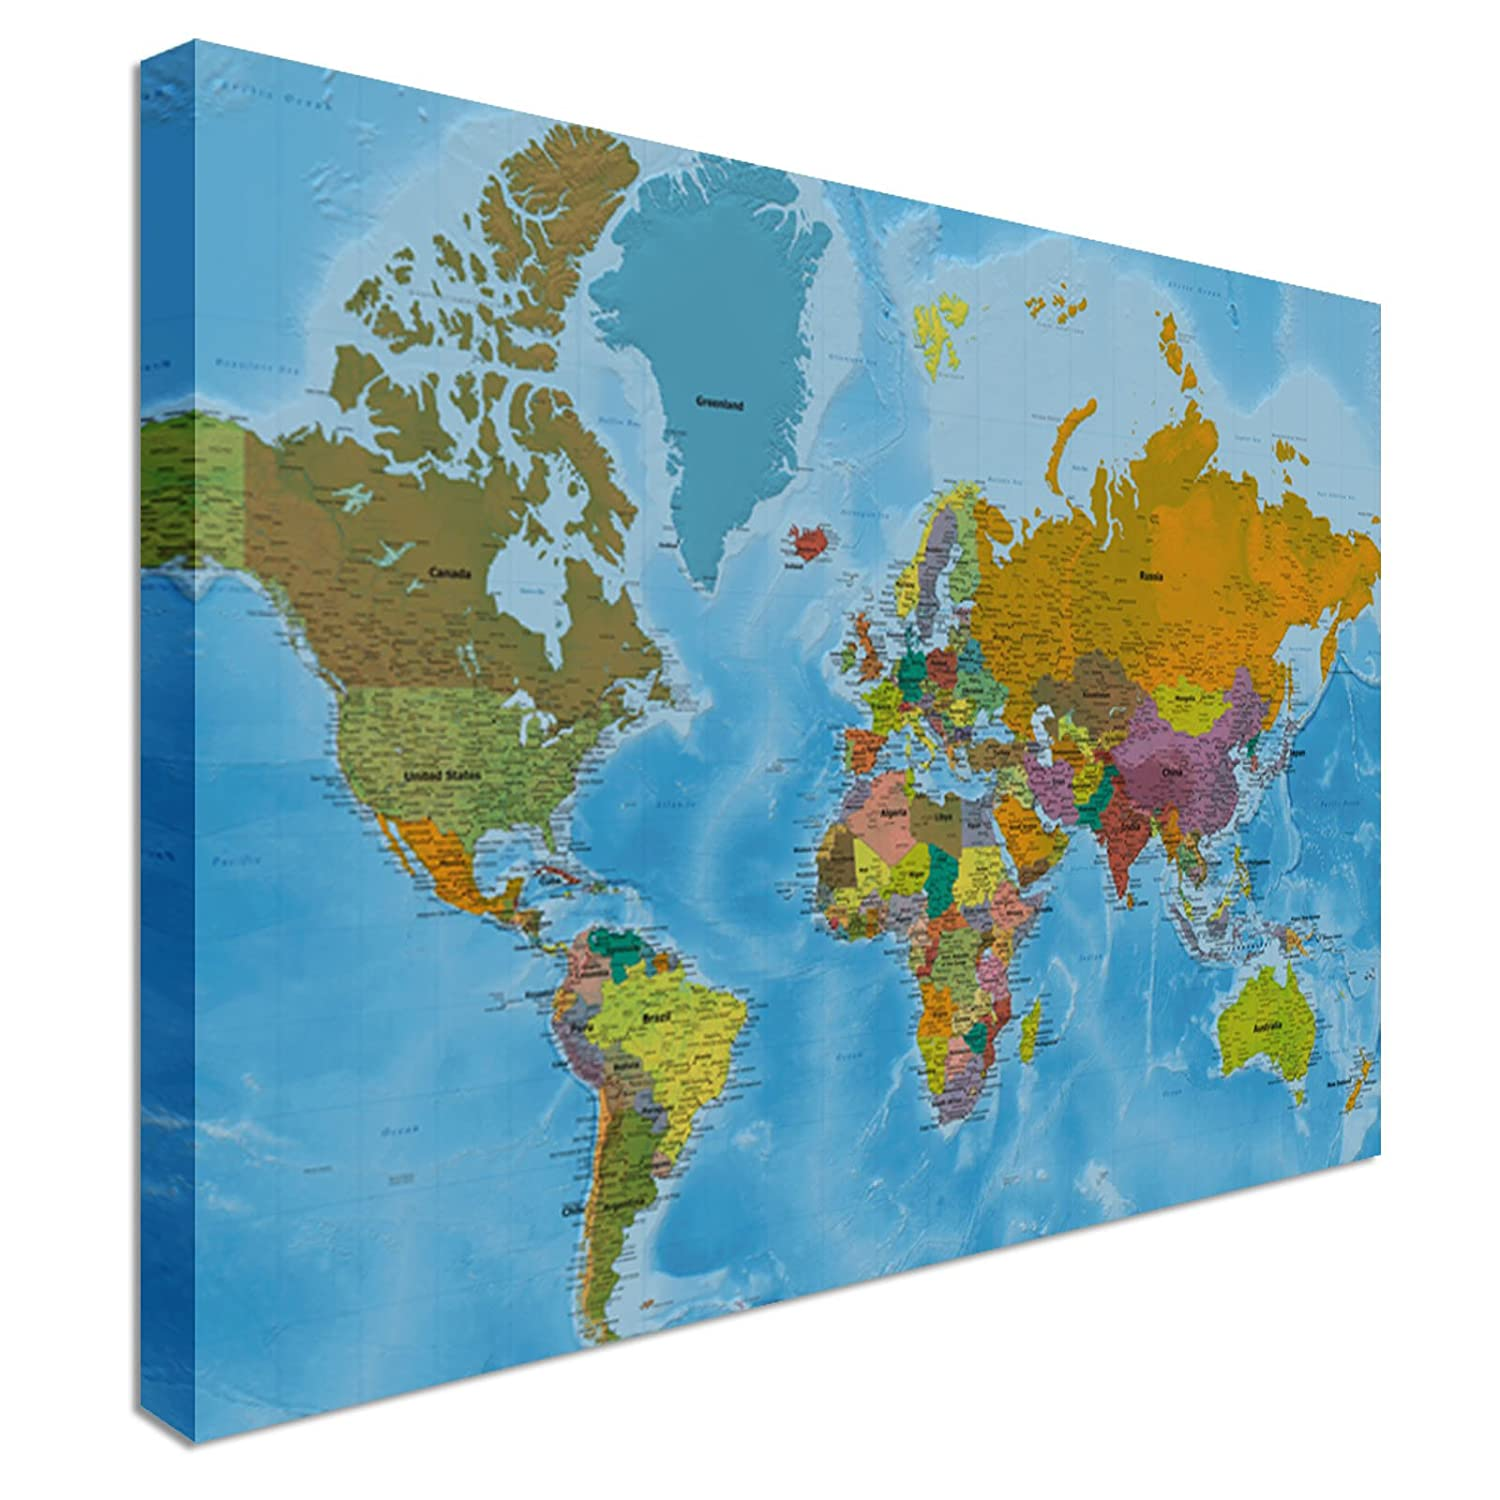 World map highest detail online hi res quality canvas wall art world map highest detail online hi res quality canvas wall art pictures 48 x 30 inches amazon kitchen home gumiabroncs Choice Image